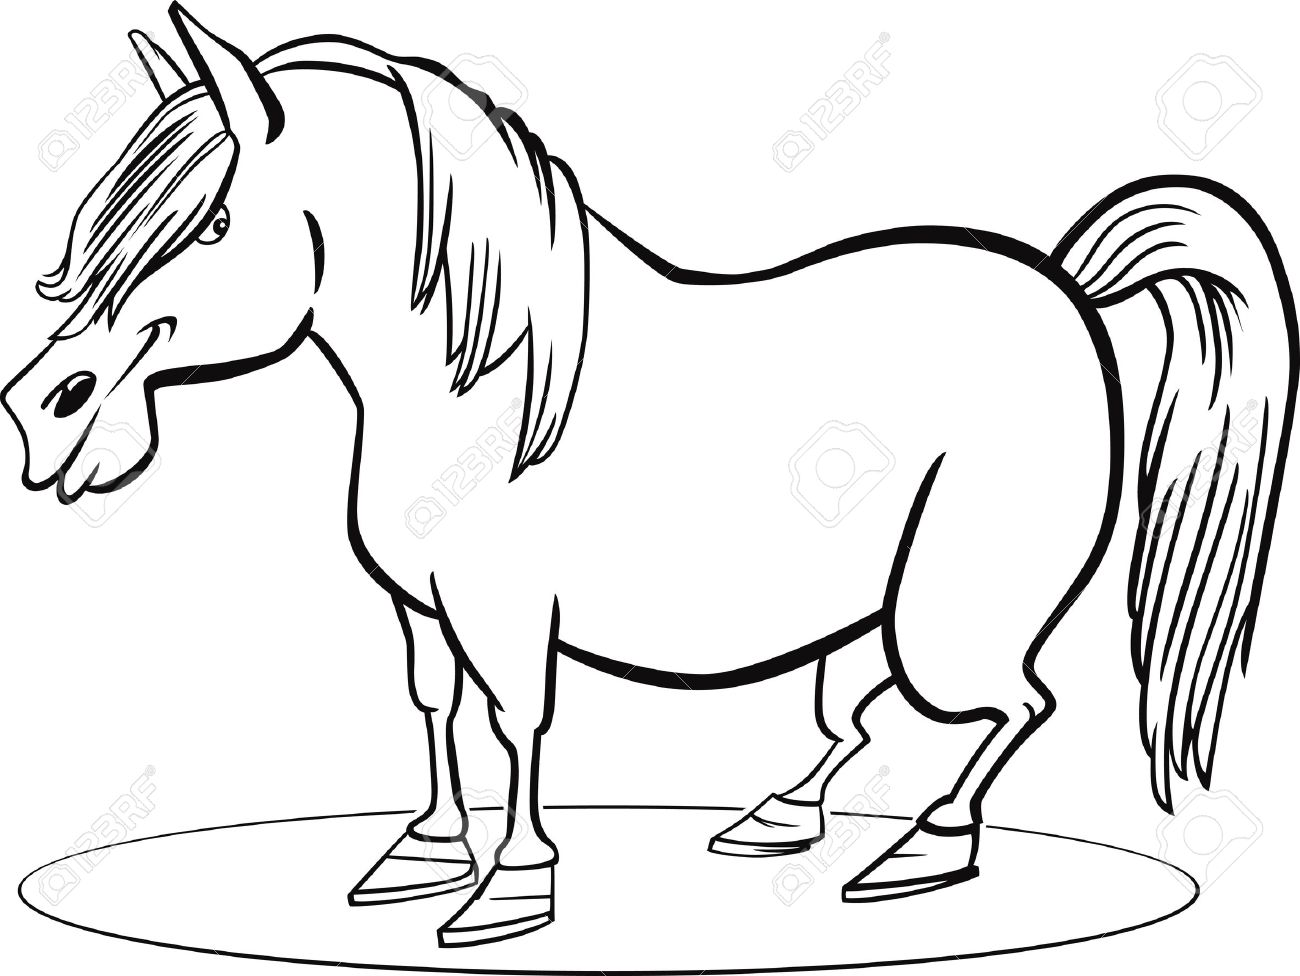 Coloring Page Illustration Of Farm Pony Horse Royalty Free Cliparts ...